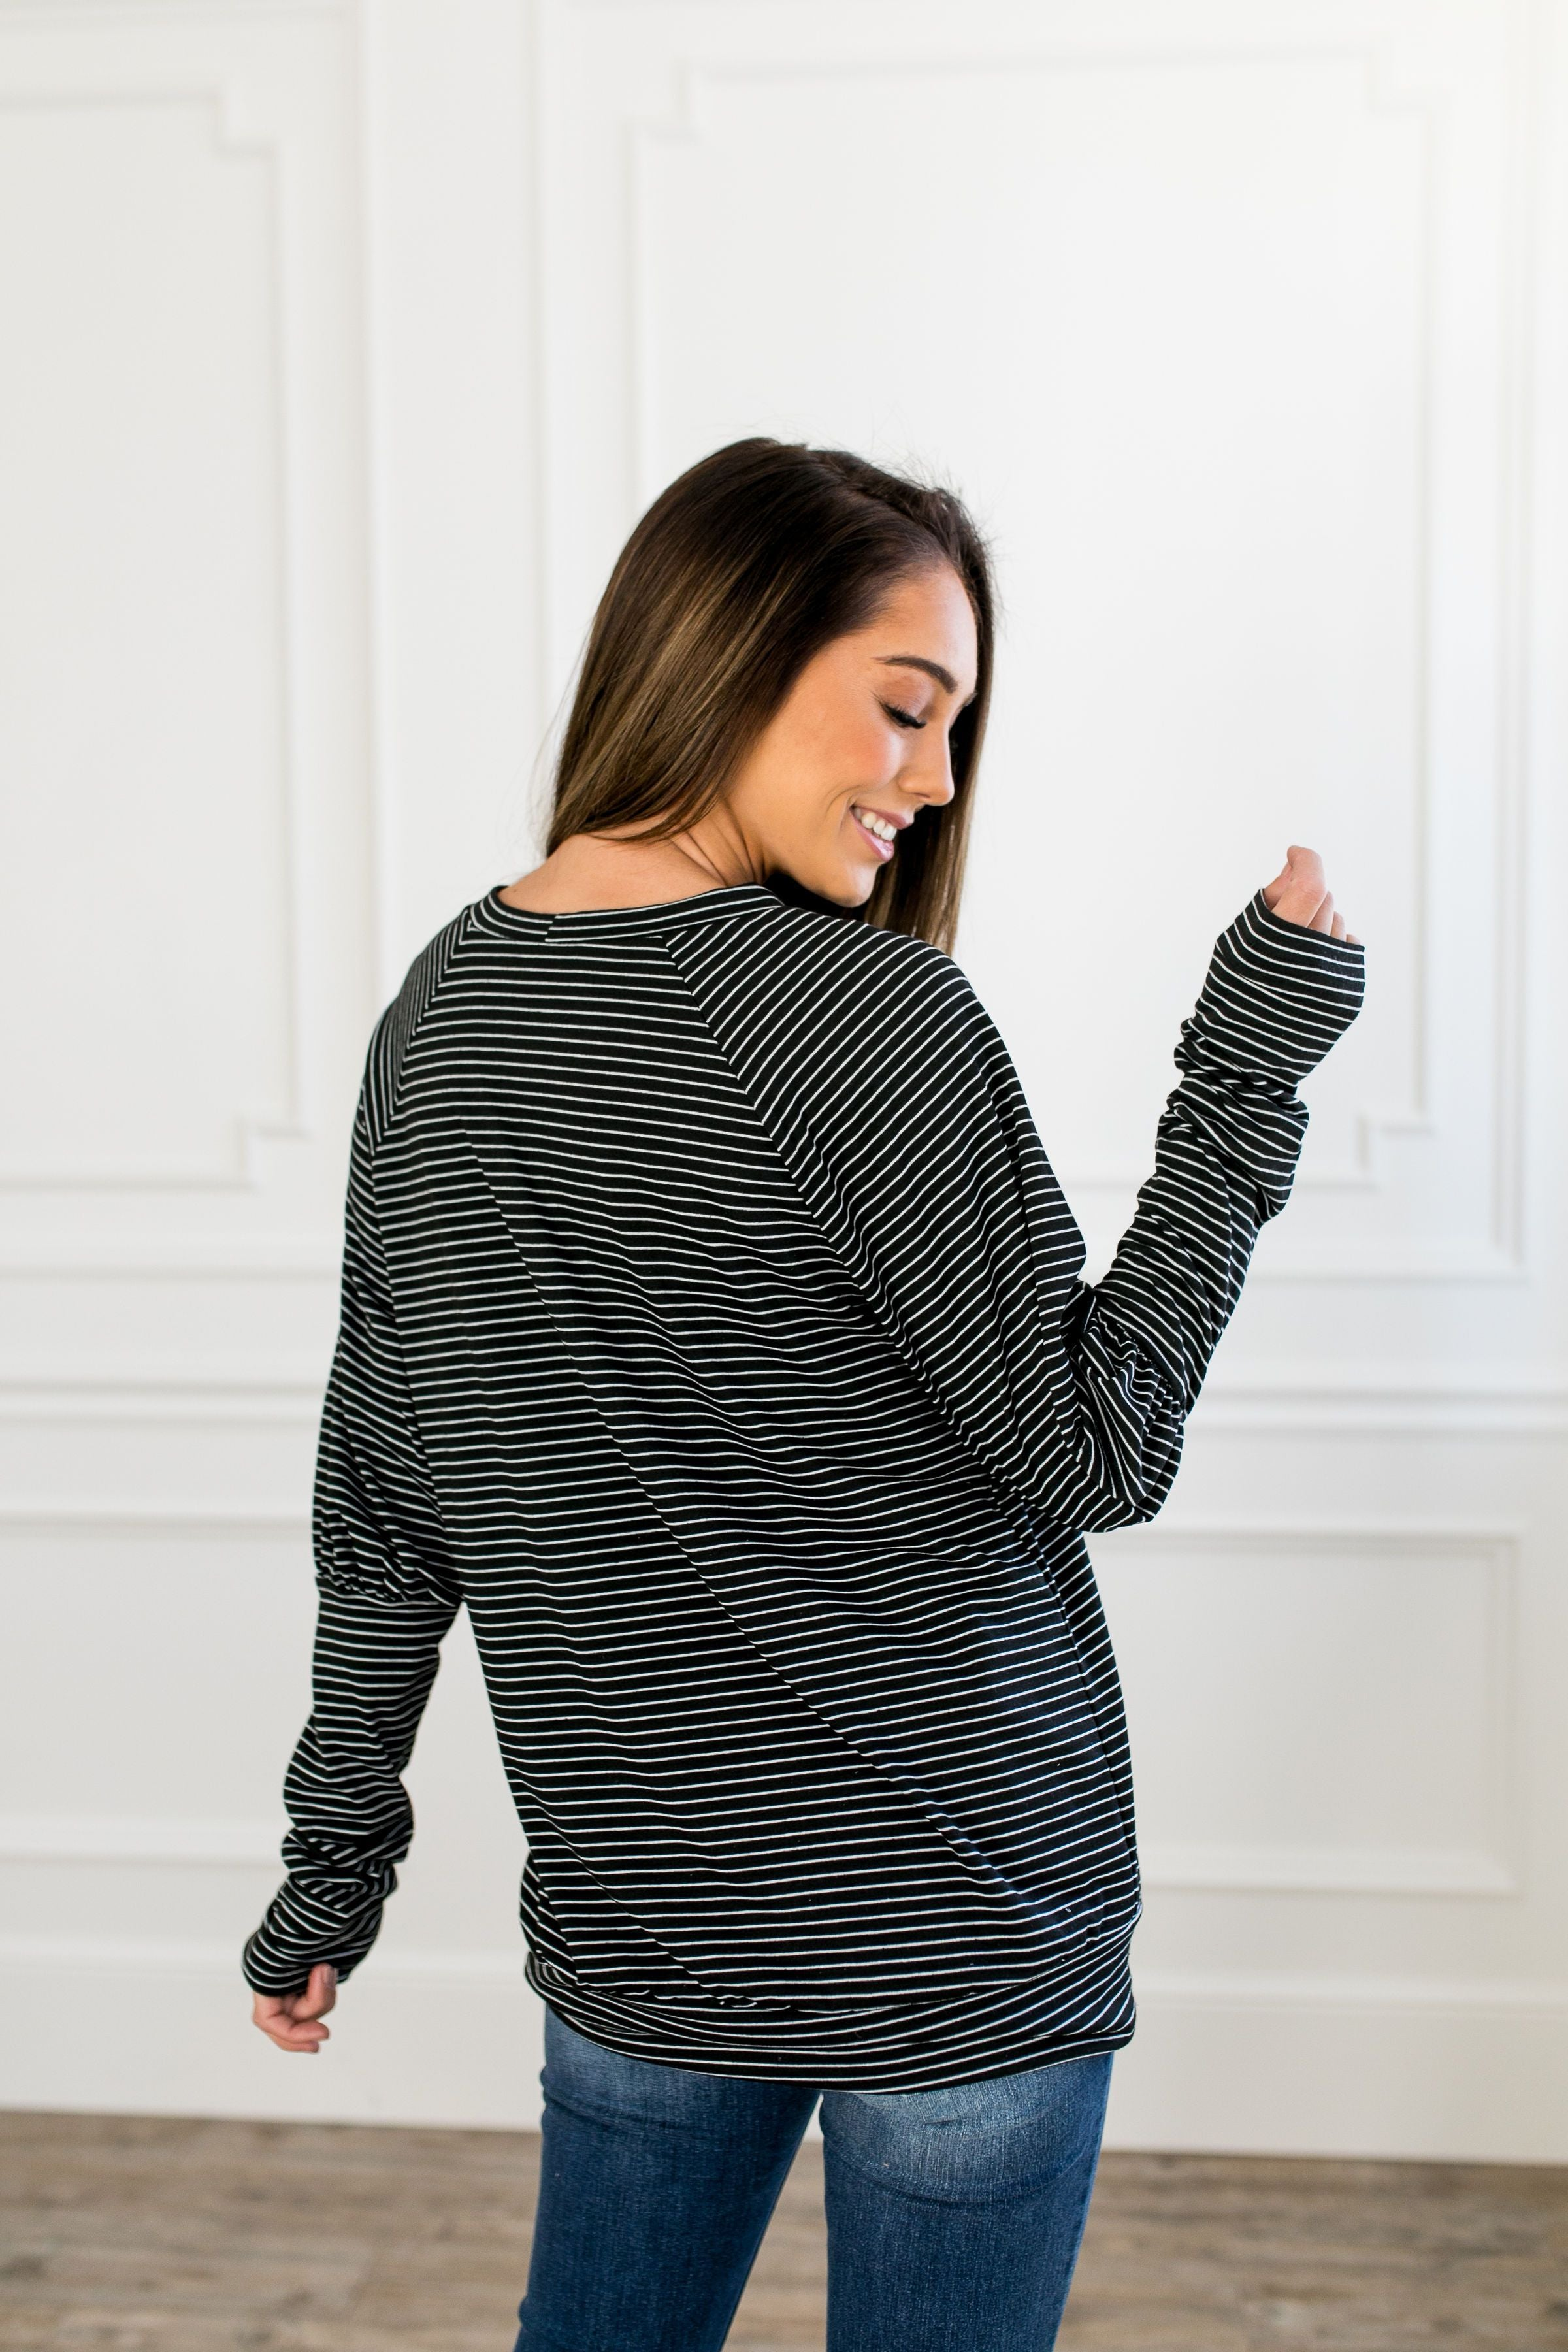 Carefree Weekend Striped Top